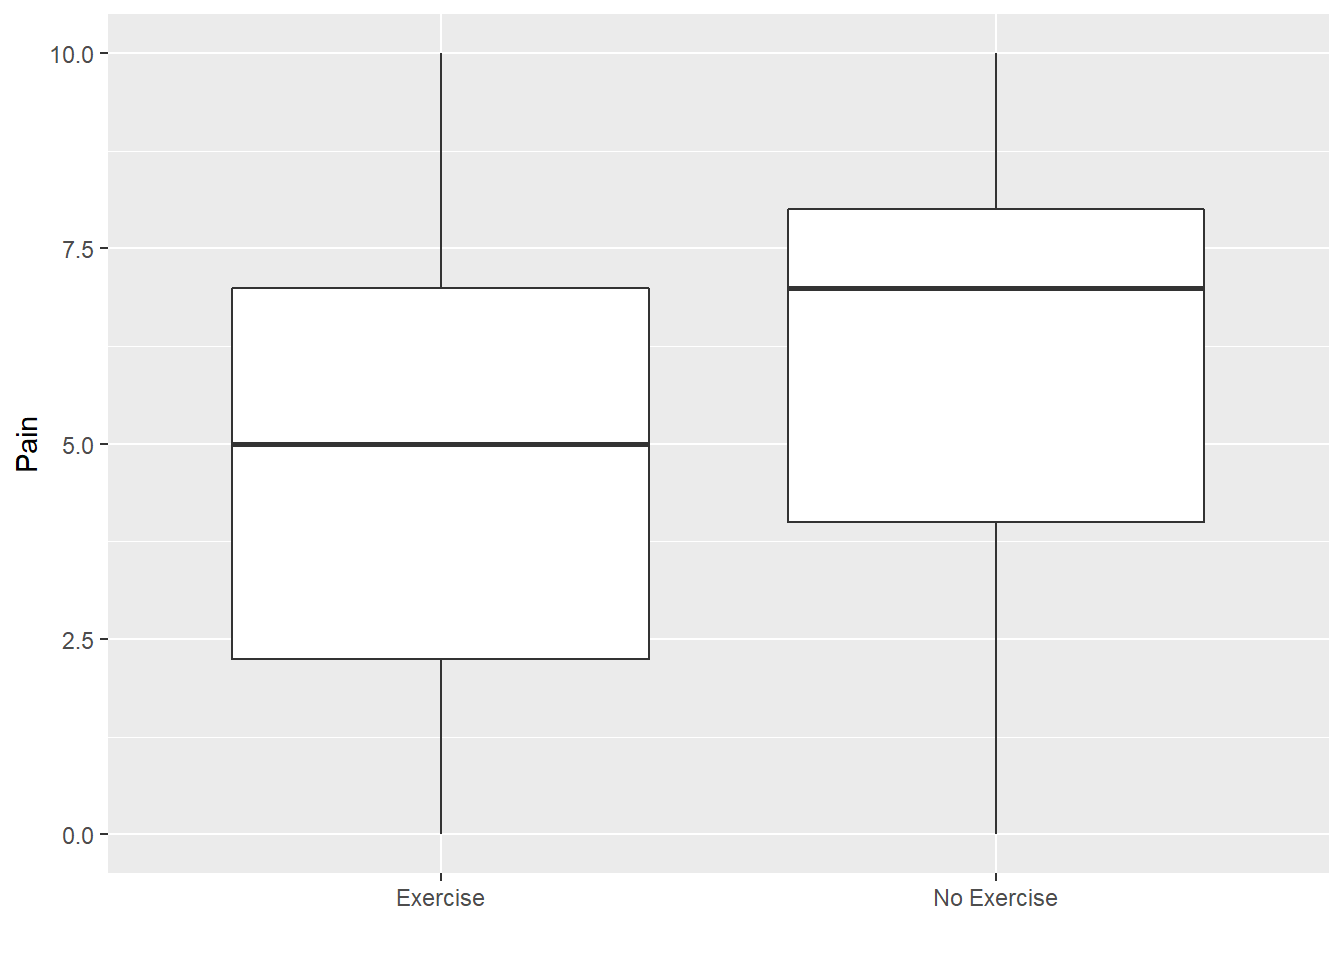 Box plot of pain by exercise